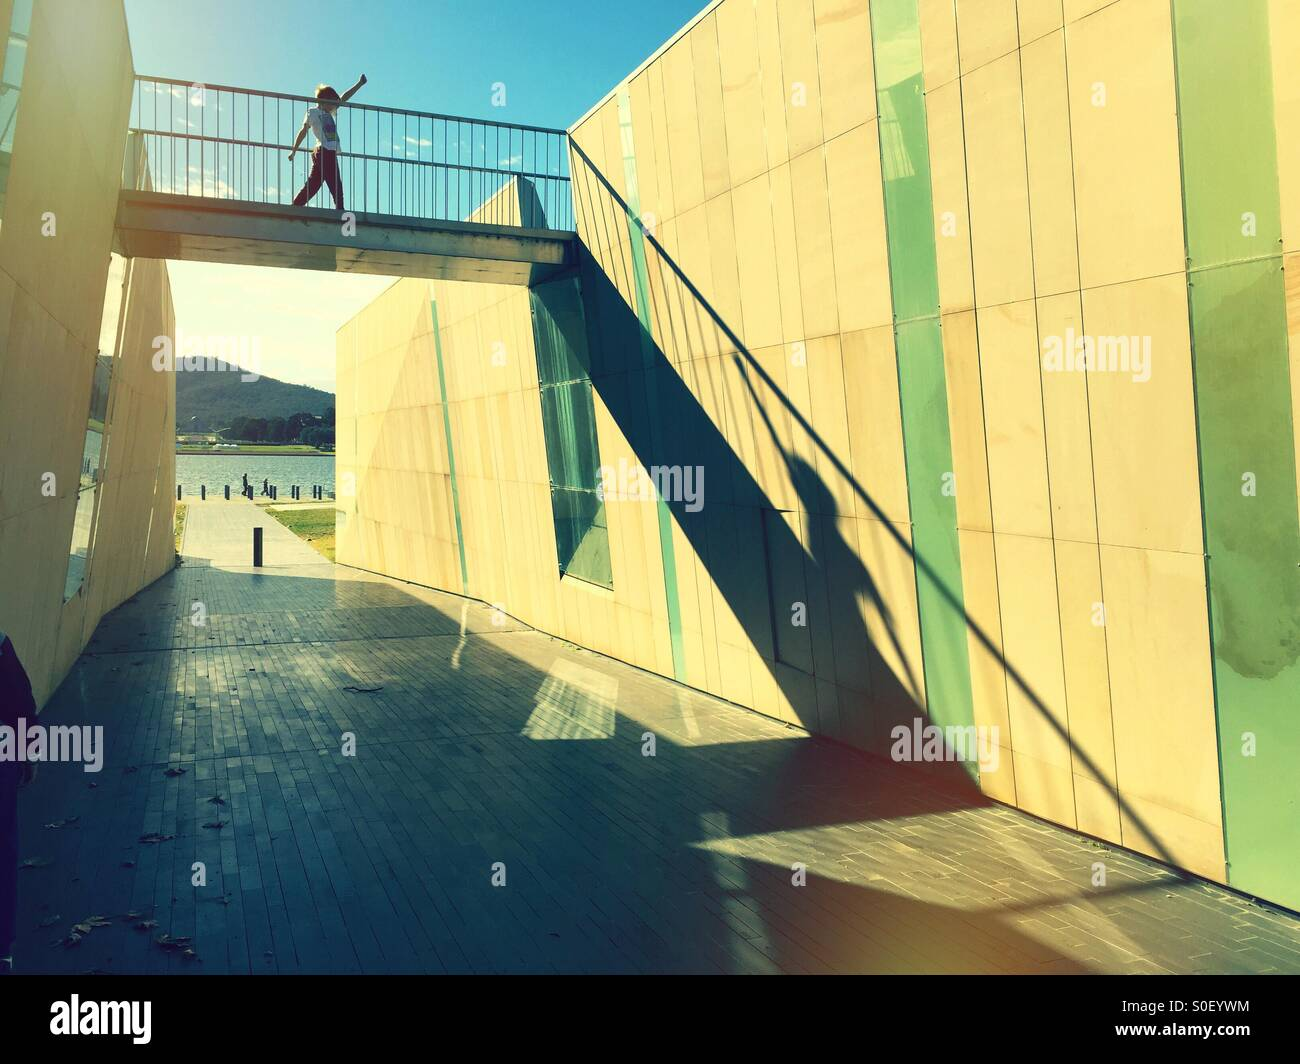 A boy striding across a bridge over an underpass - Stock Image